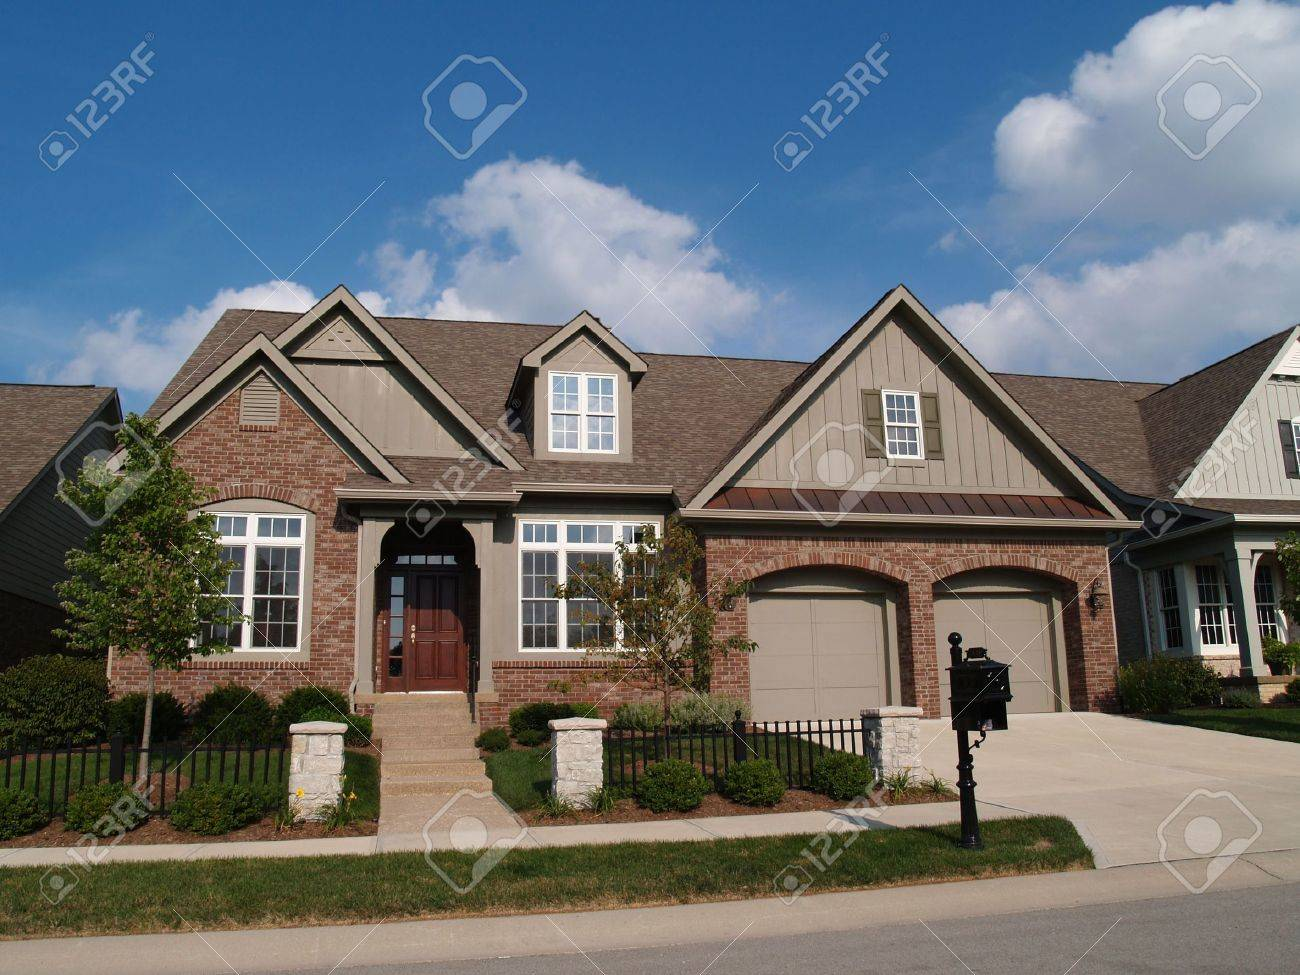 Small home with double garage in a neighborhood where the houses are built close together with very little yard. - 5862578